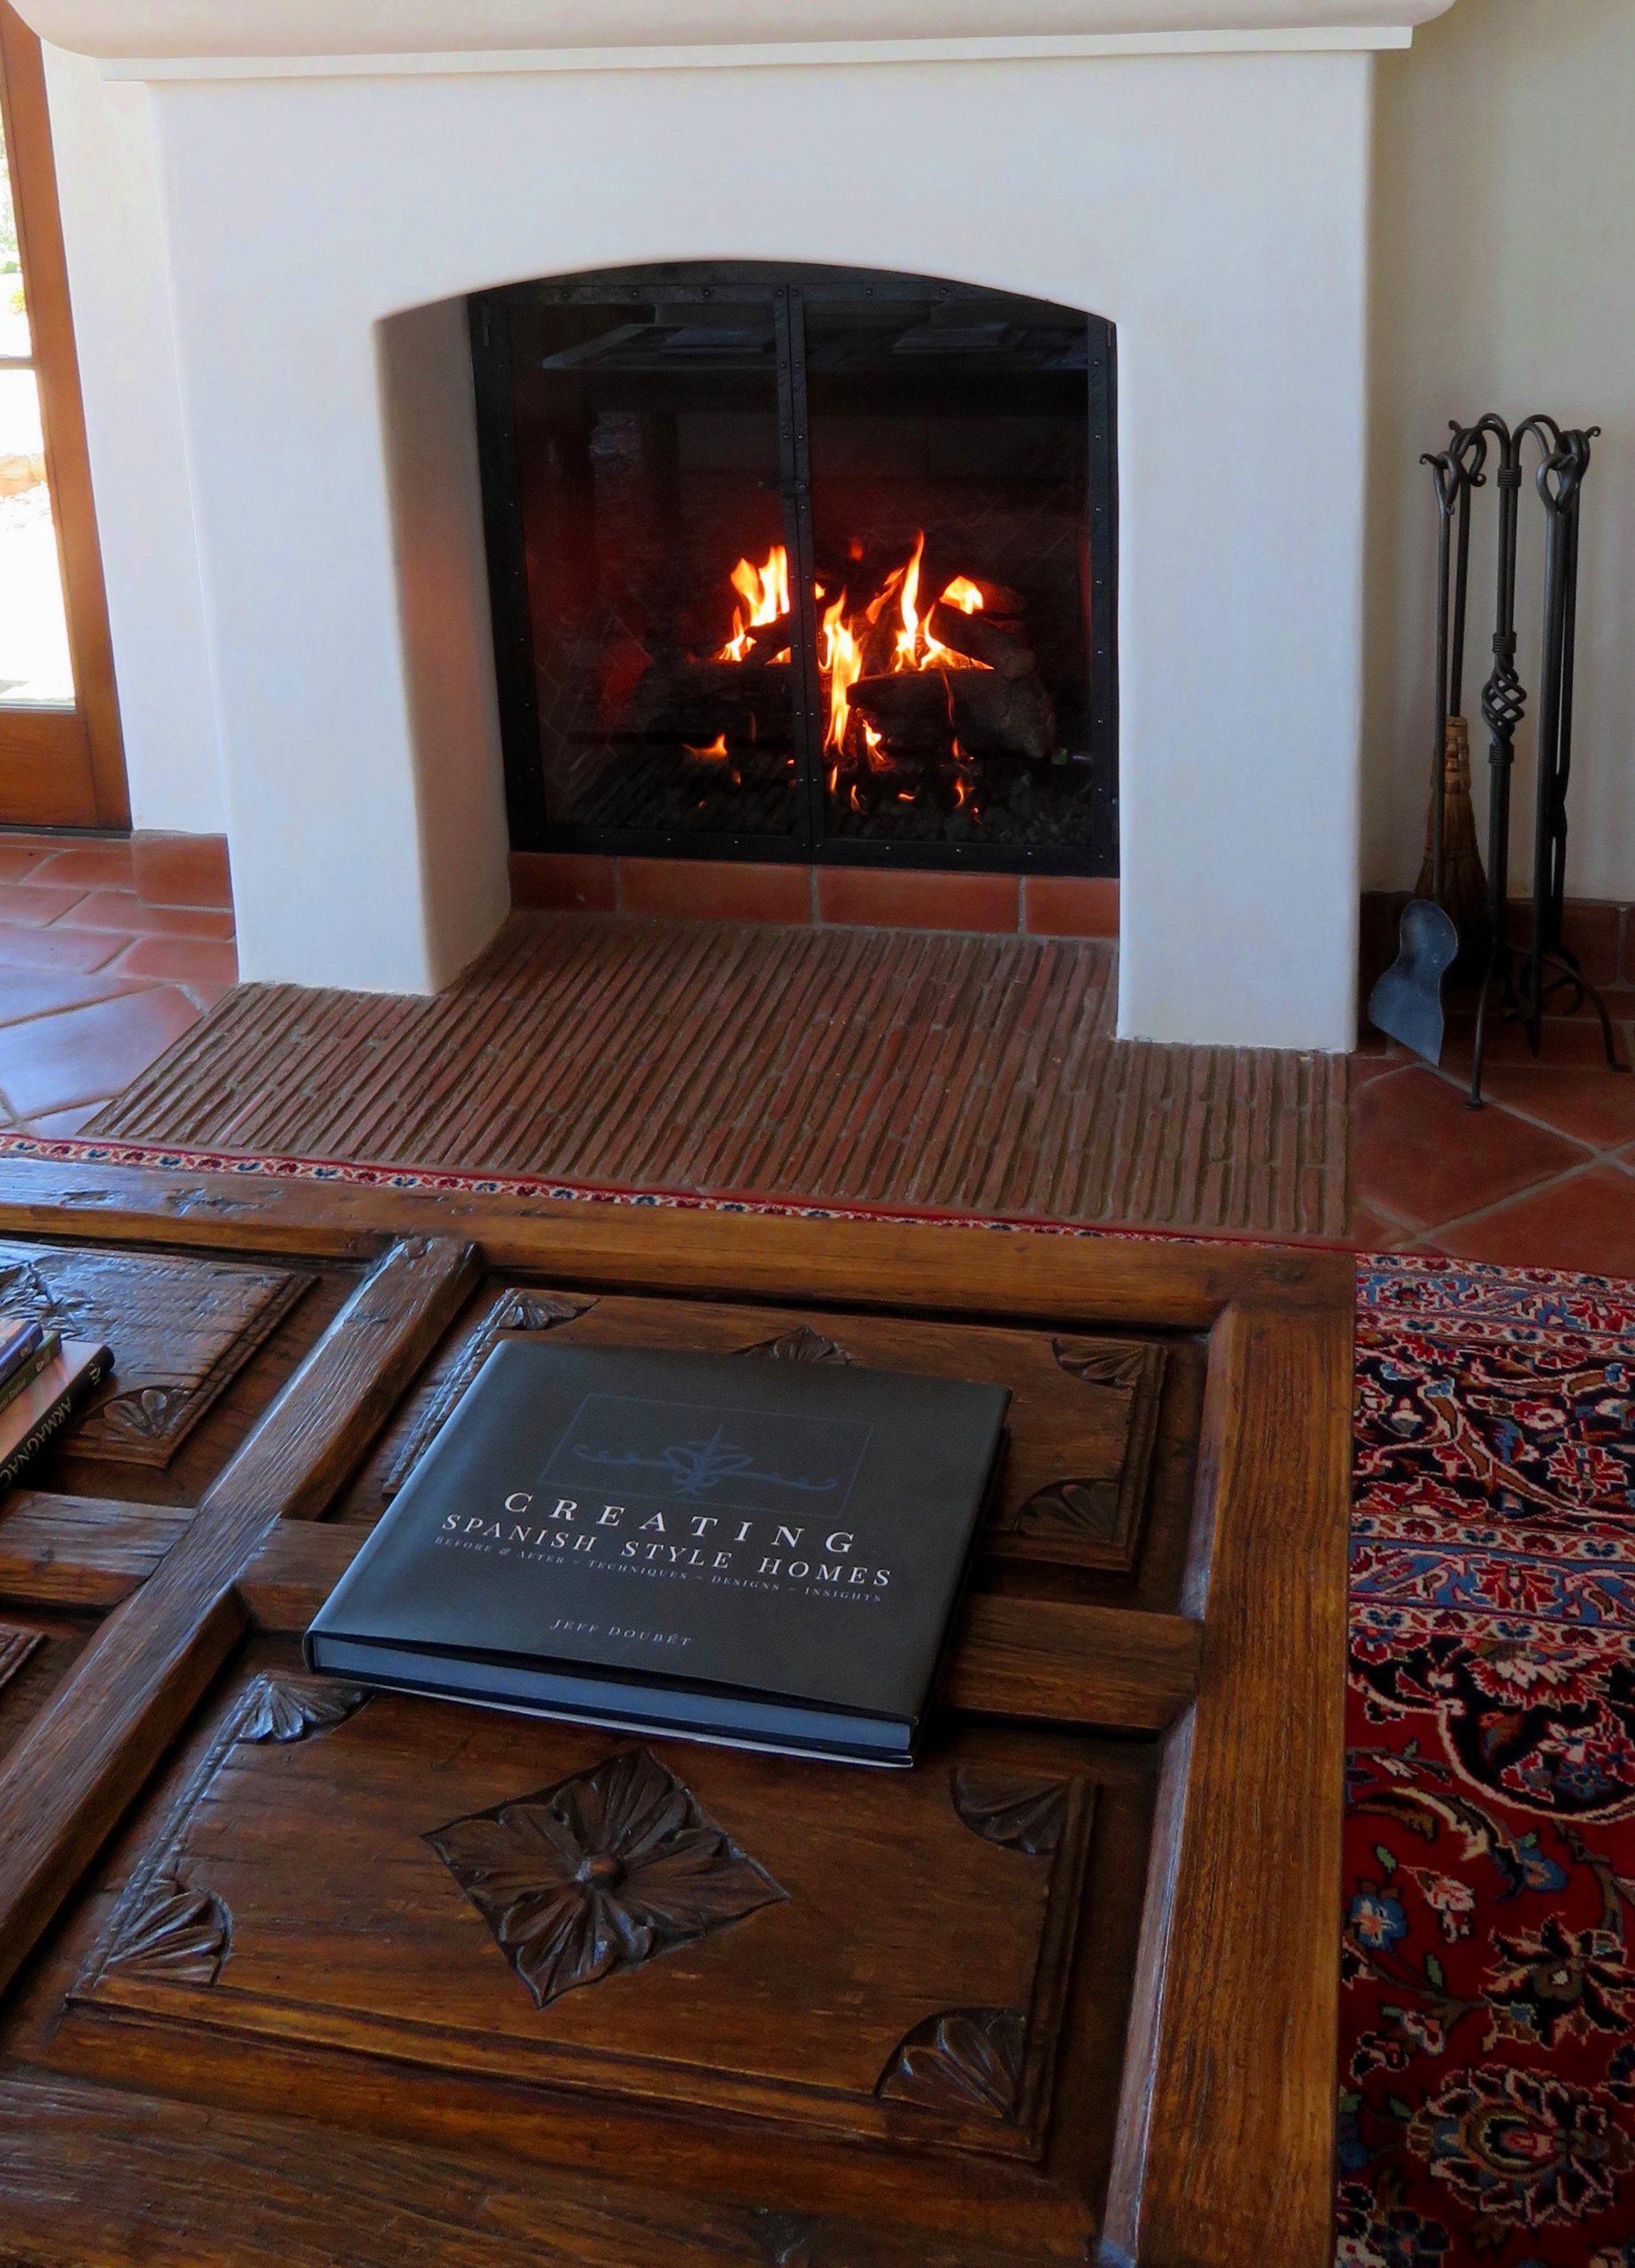 Spanish fireplace design and book